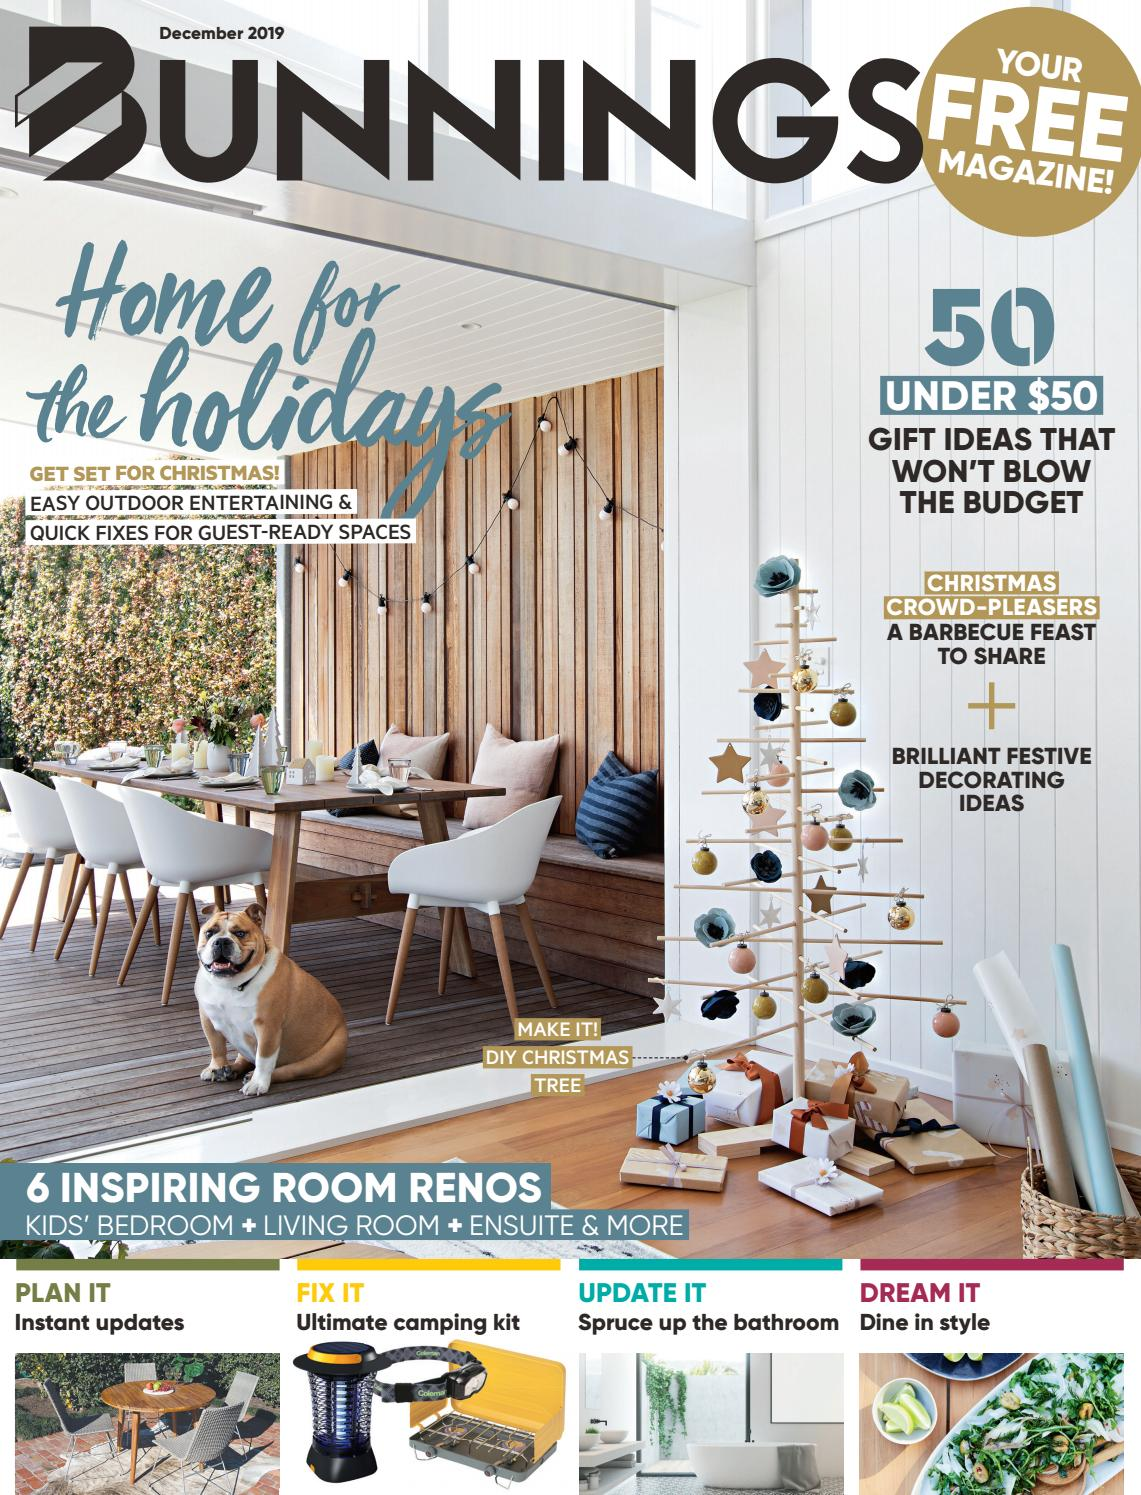 Bunnings Magazine December 2019 By Bunnings Issuu